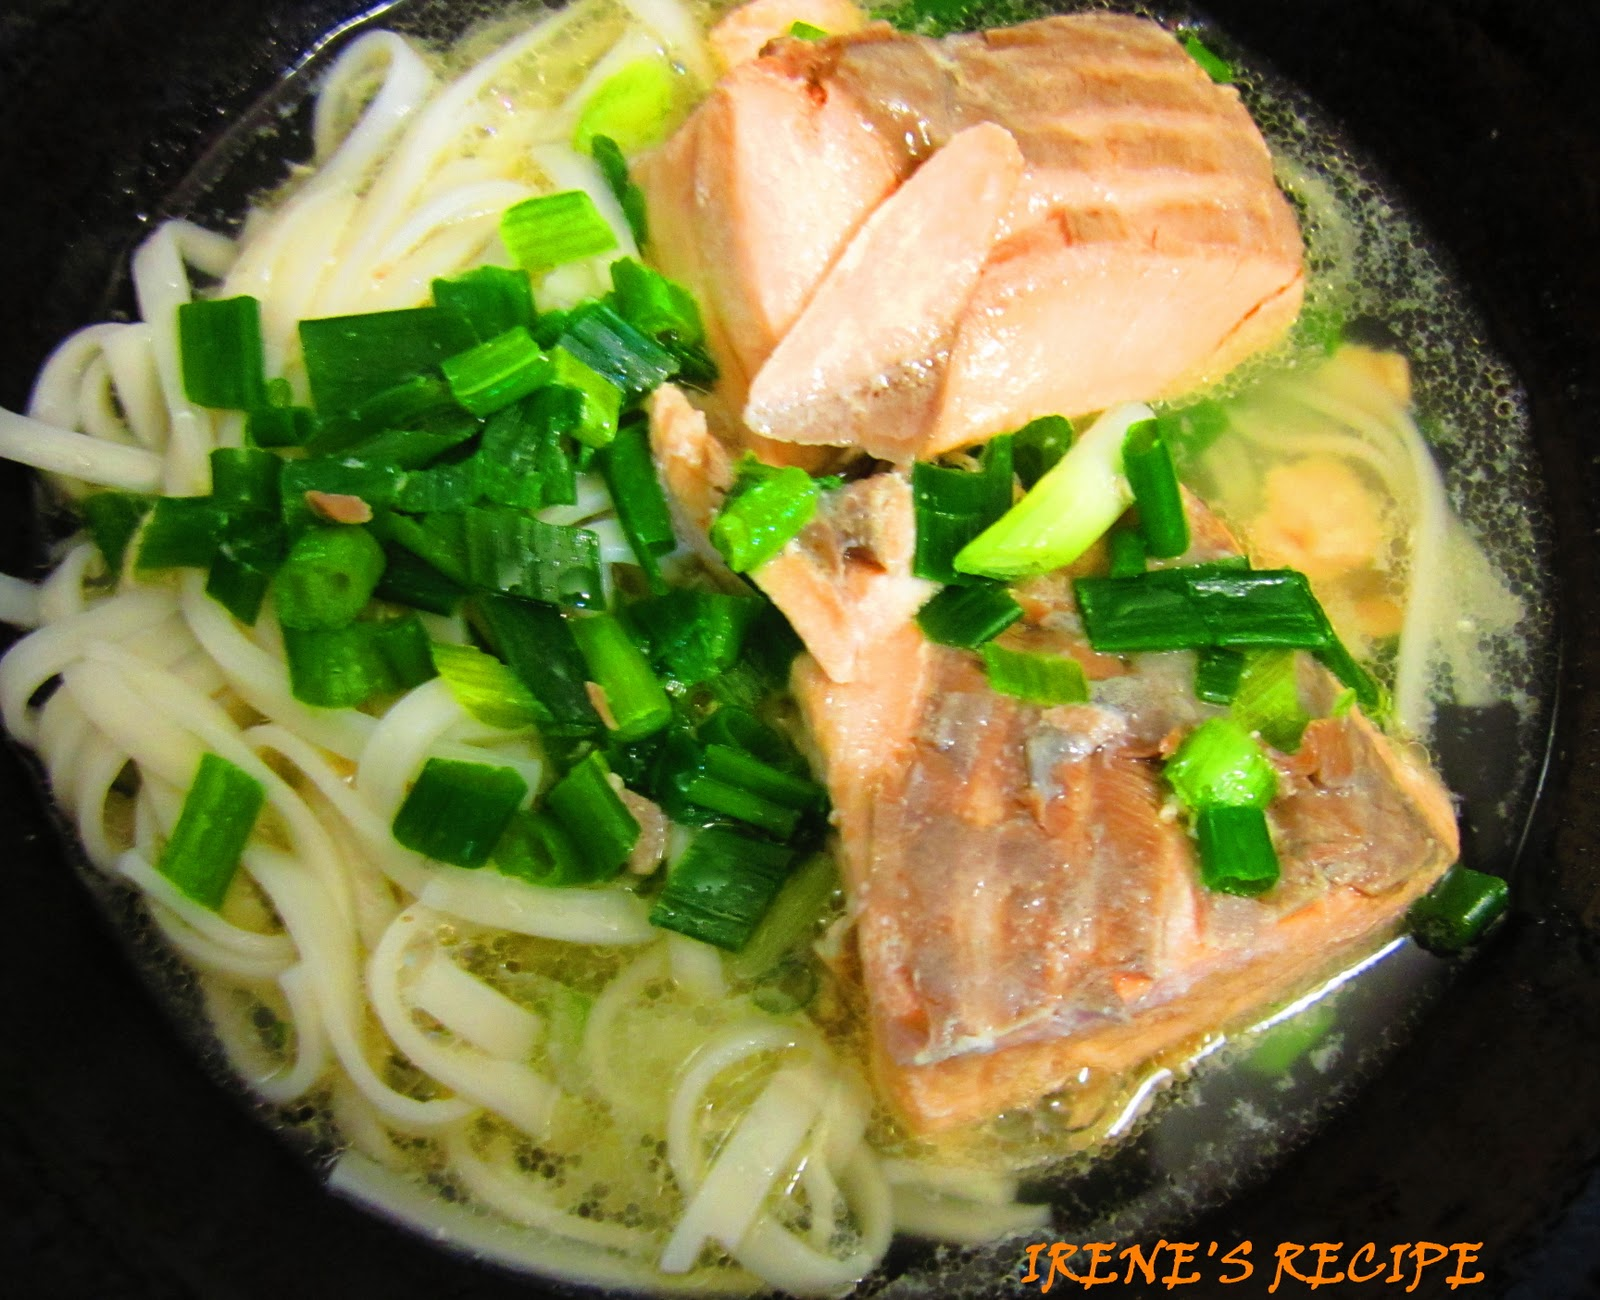 Irene's Recipe: Salmon Noodle Soup